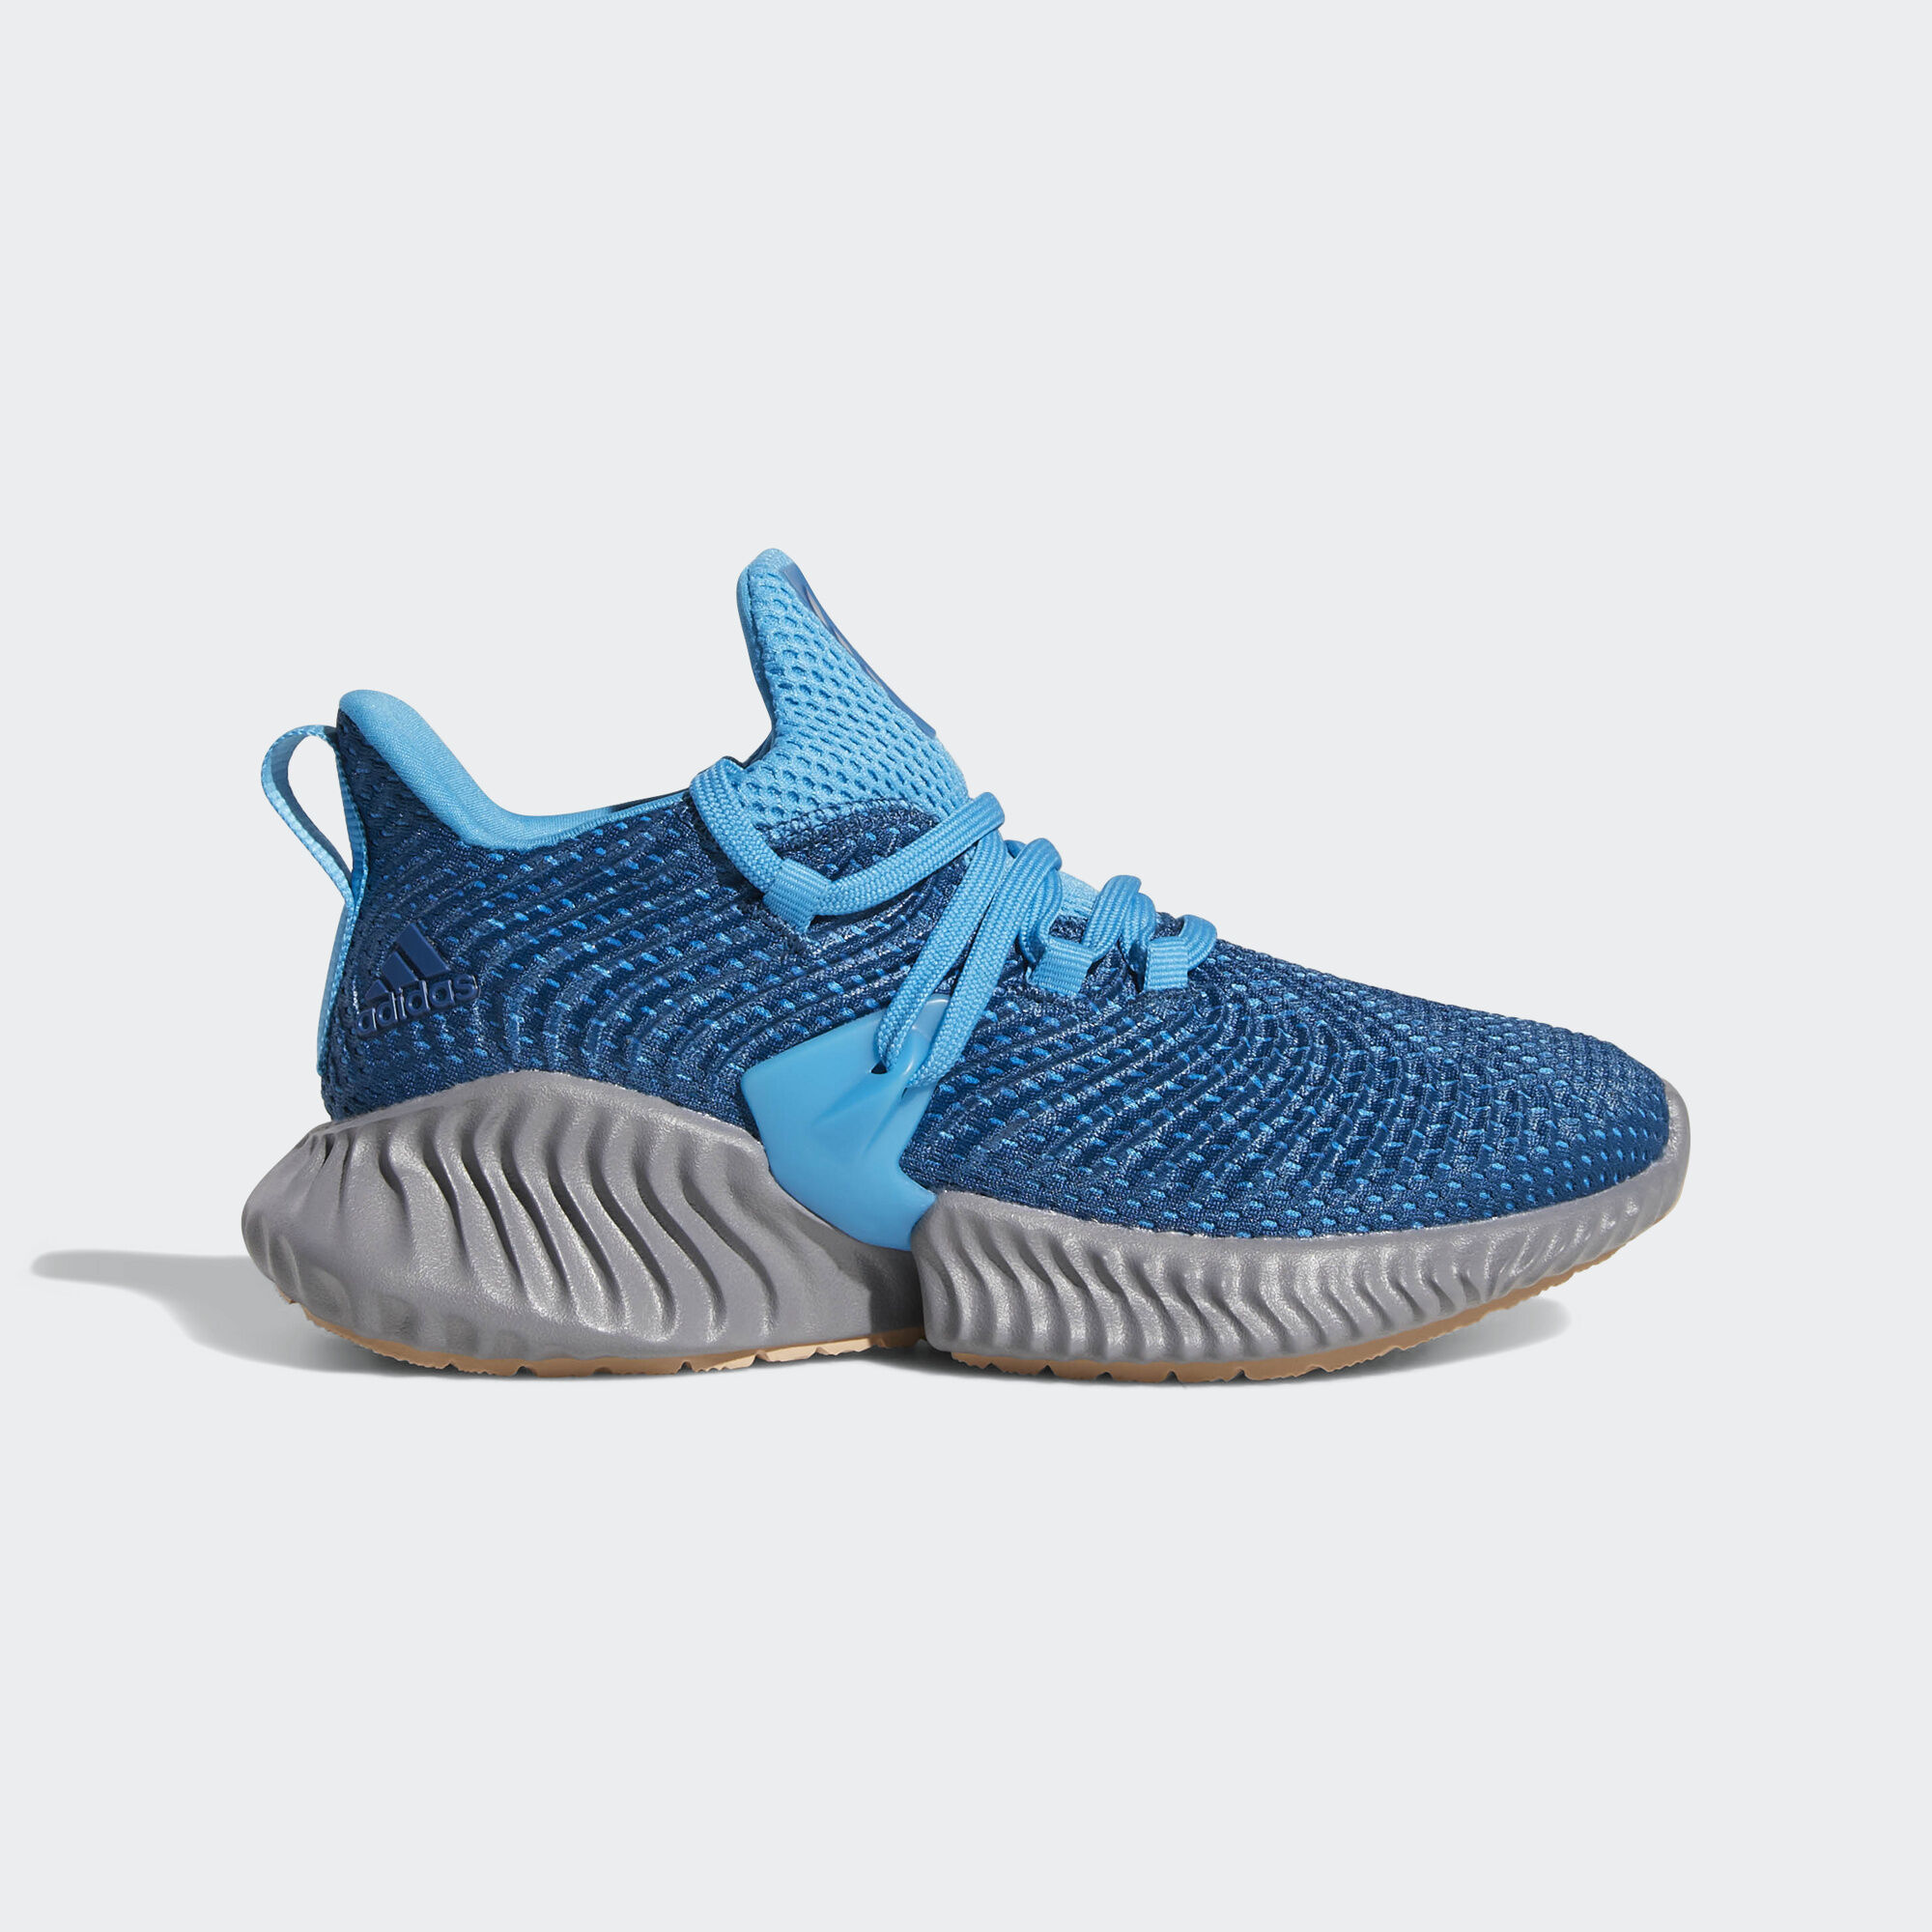 buy online 7b325 30332 adidas - Alphabounce Instinct Shoes Legend Marine  Legend Marine  Shock  Cyan F33970